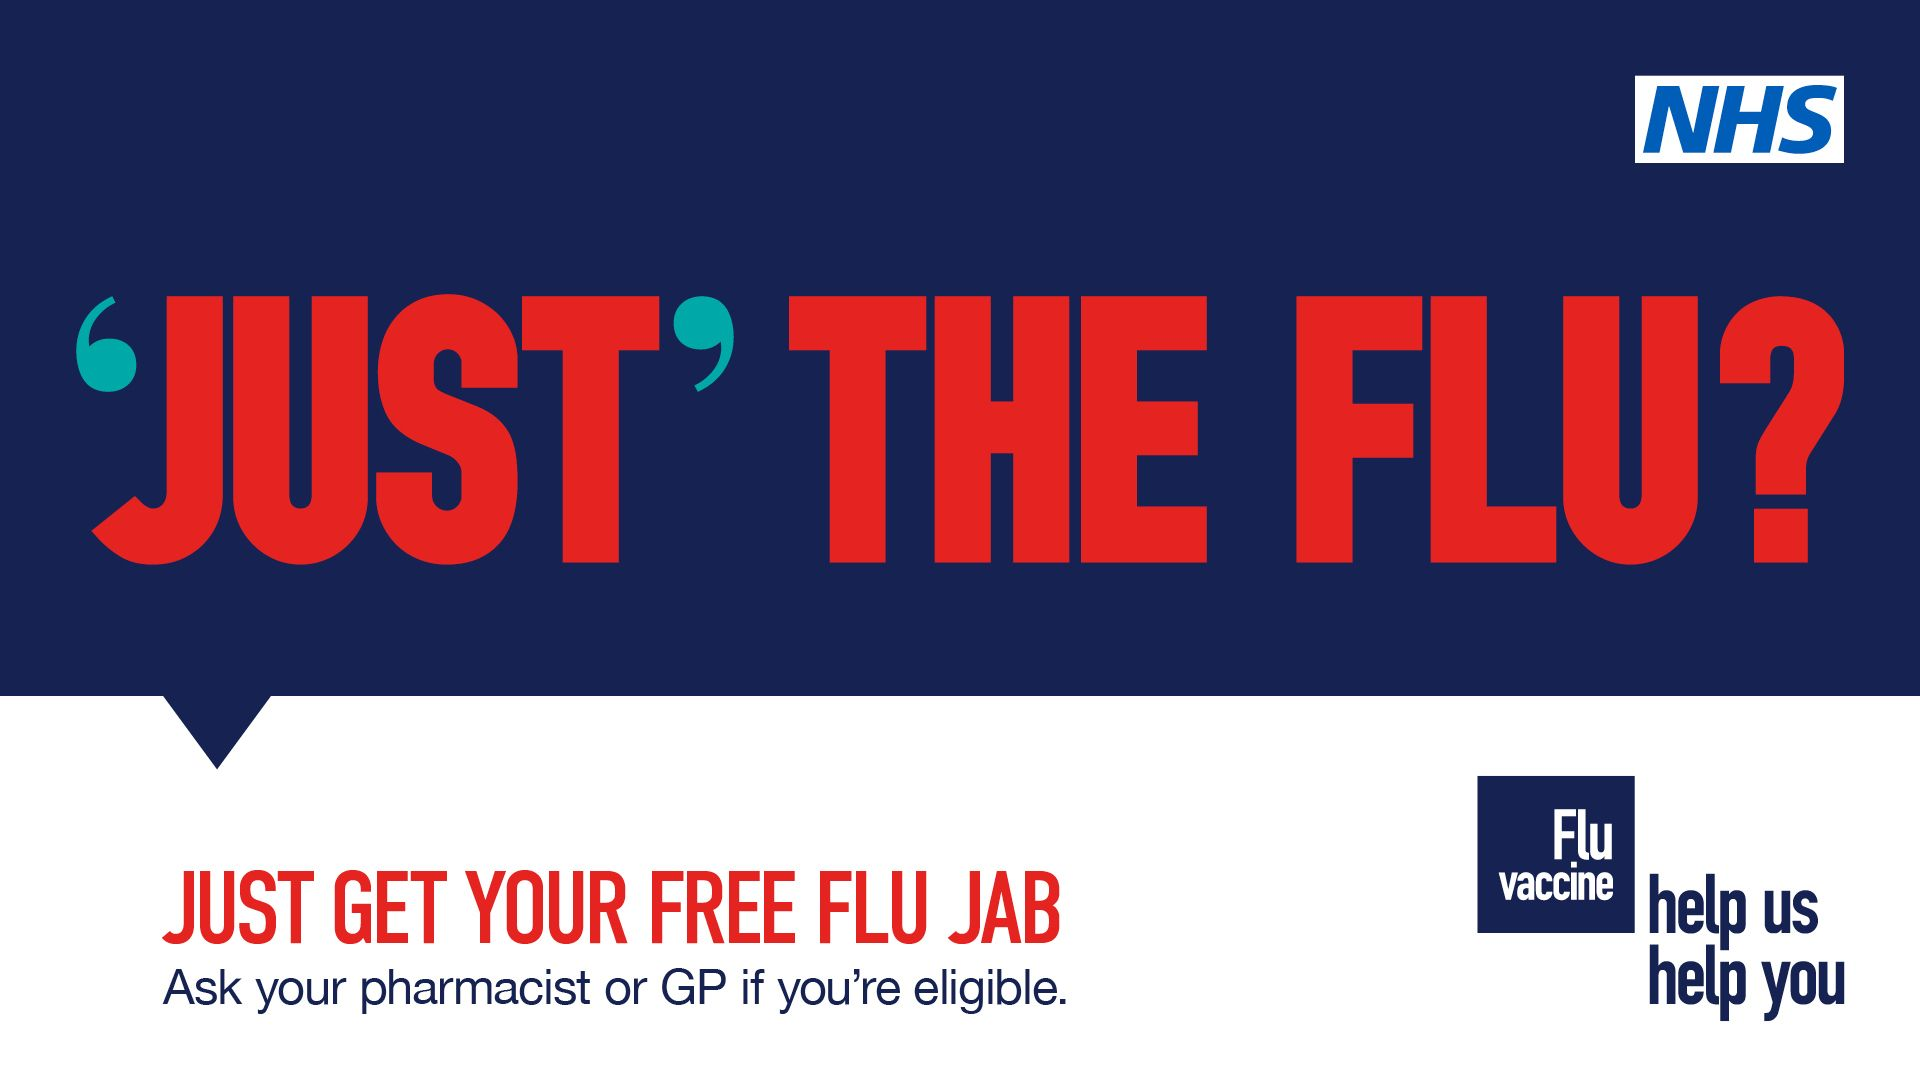 Flu Campaign poster encouraging people to get flu jabs